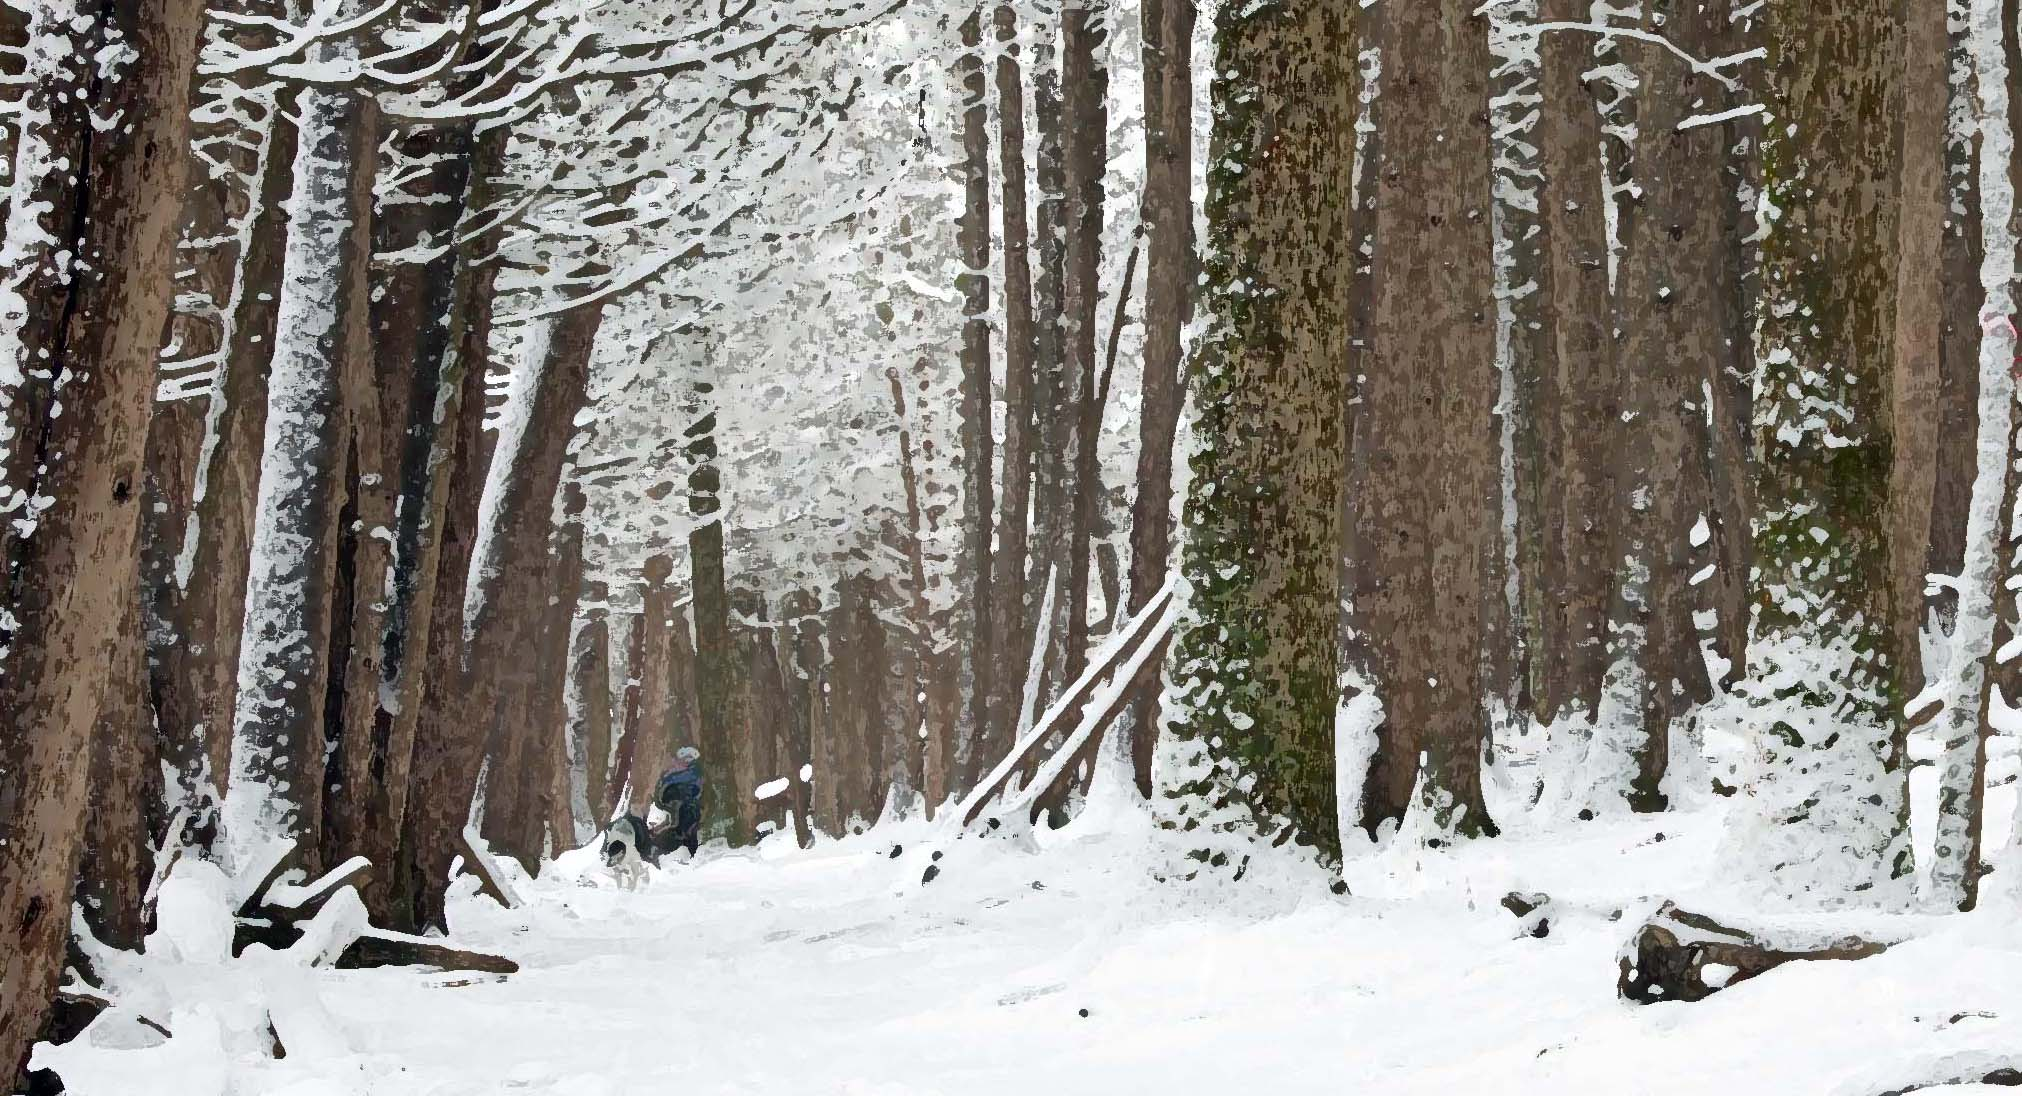 Nature as Poet … The Forest in Winter